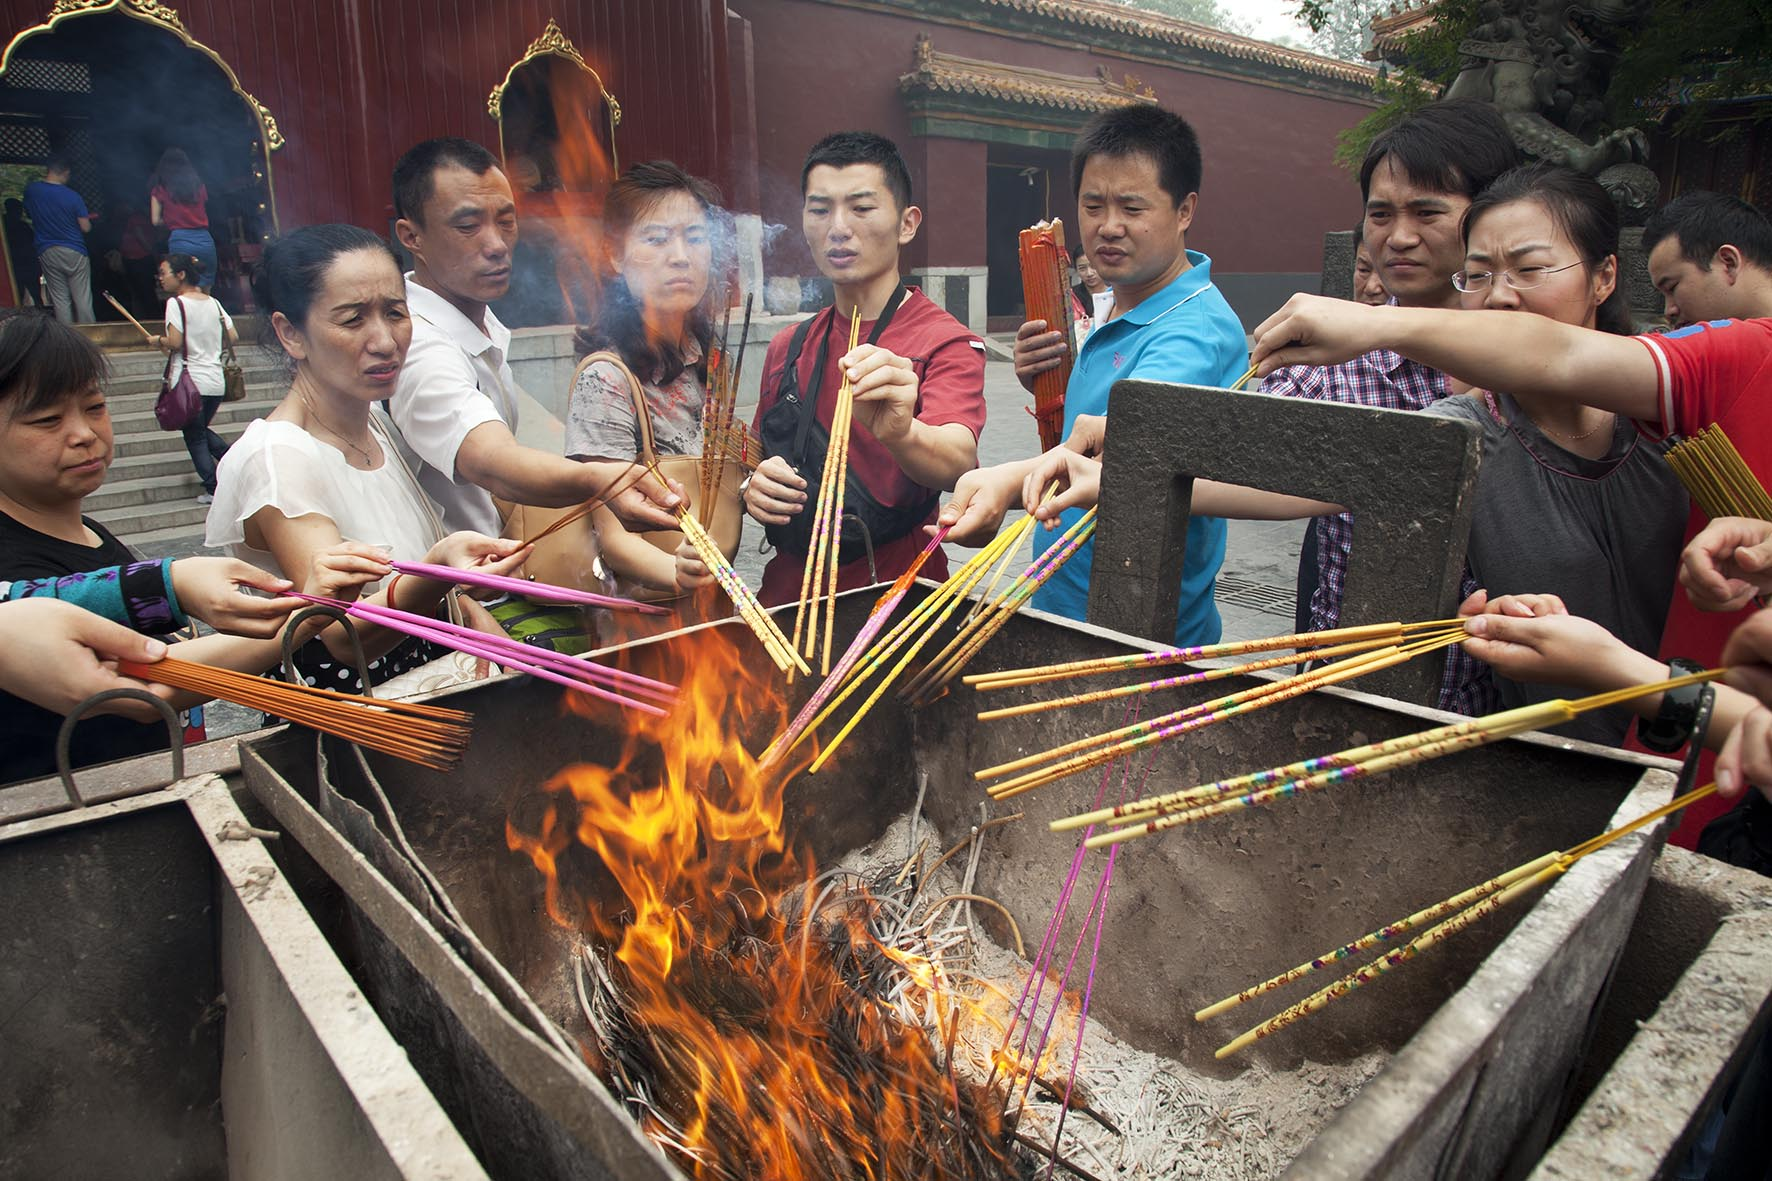 """People come to pray and burn incense sticks at The Yonghe Temple, also known as the """"Palace of Peace and Harmony Lama Temple""""."""